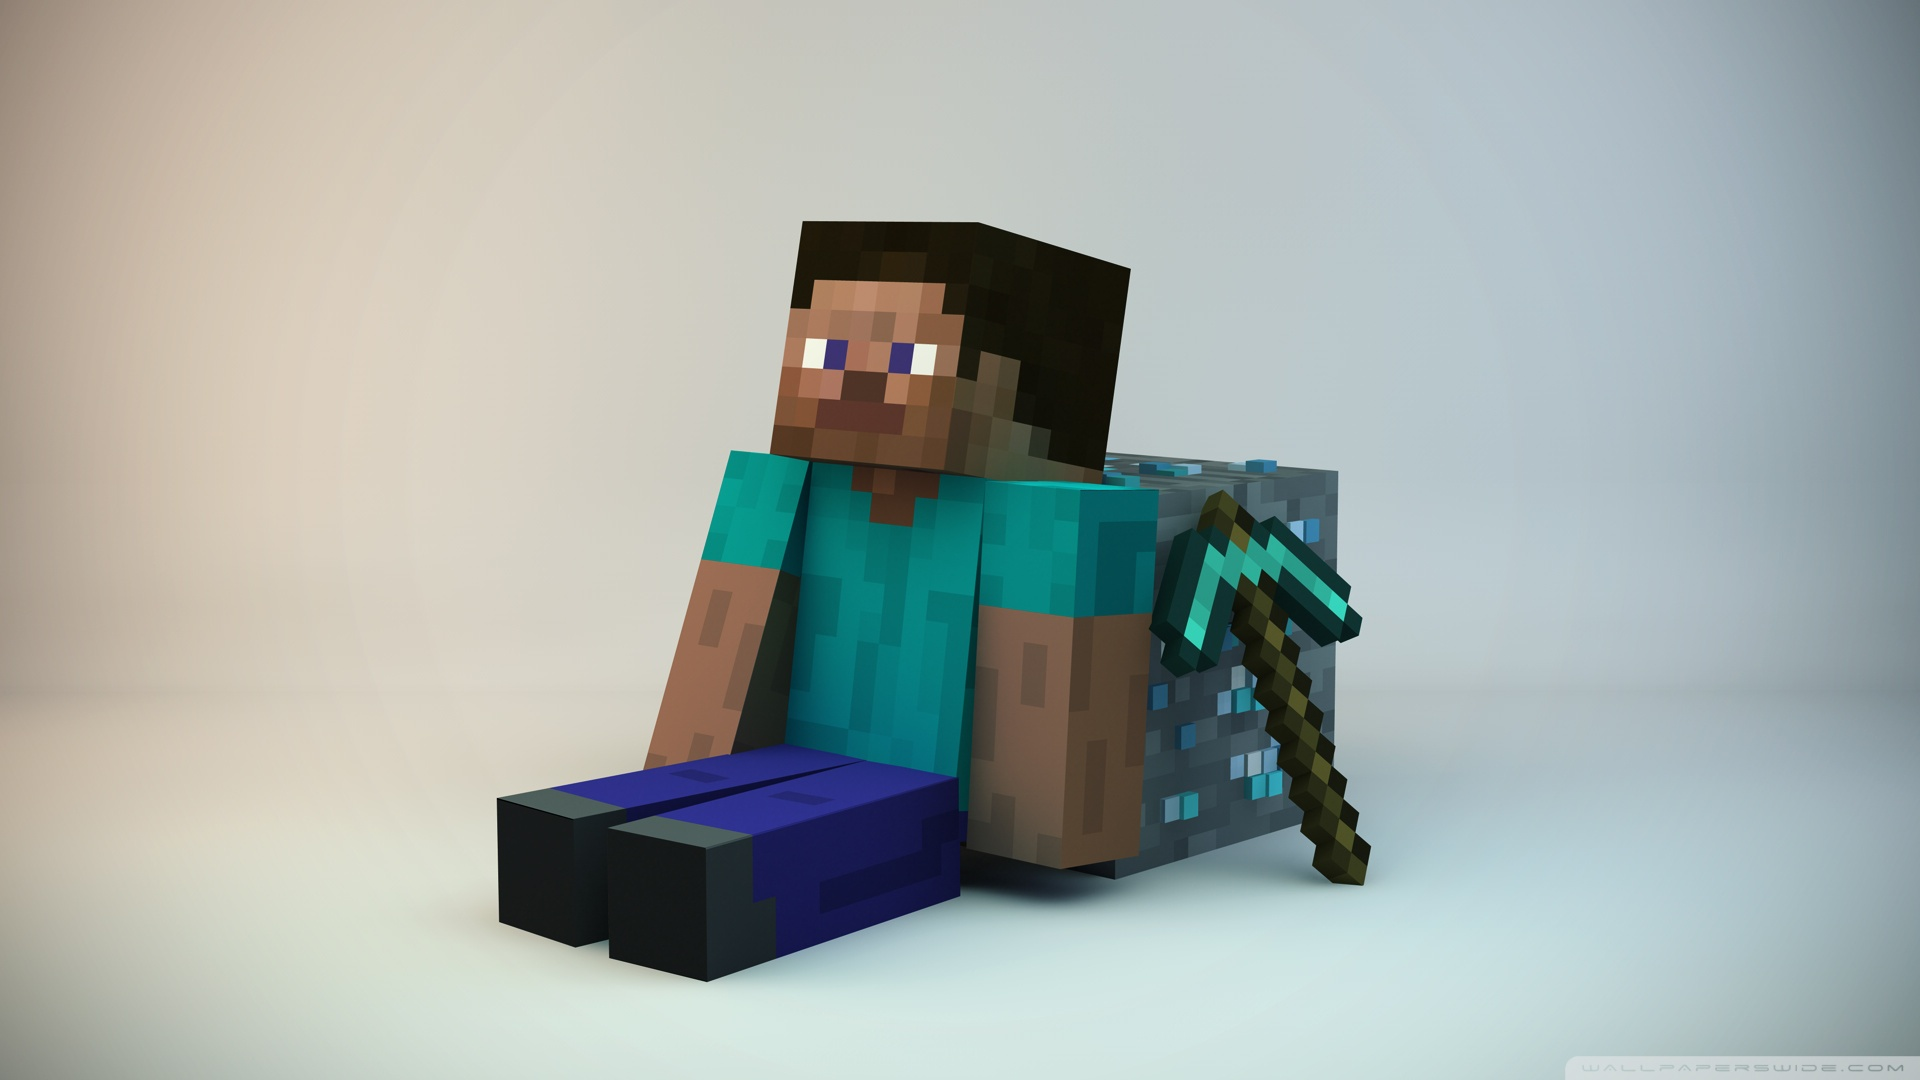 minecraft steve pictures hd wallpaper de minecraft hdwallpaper2013